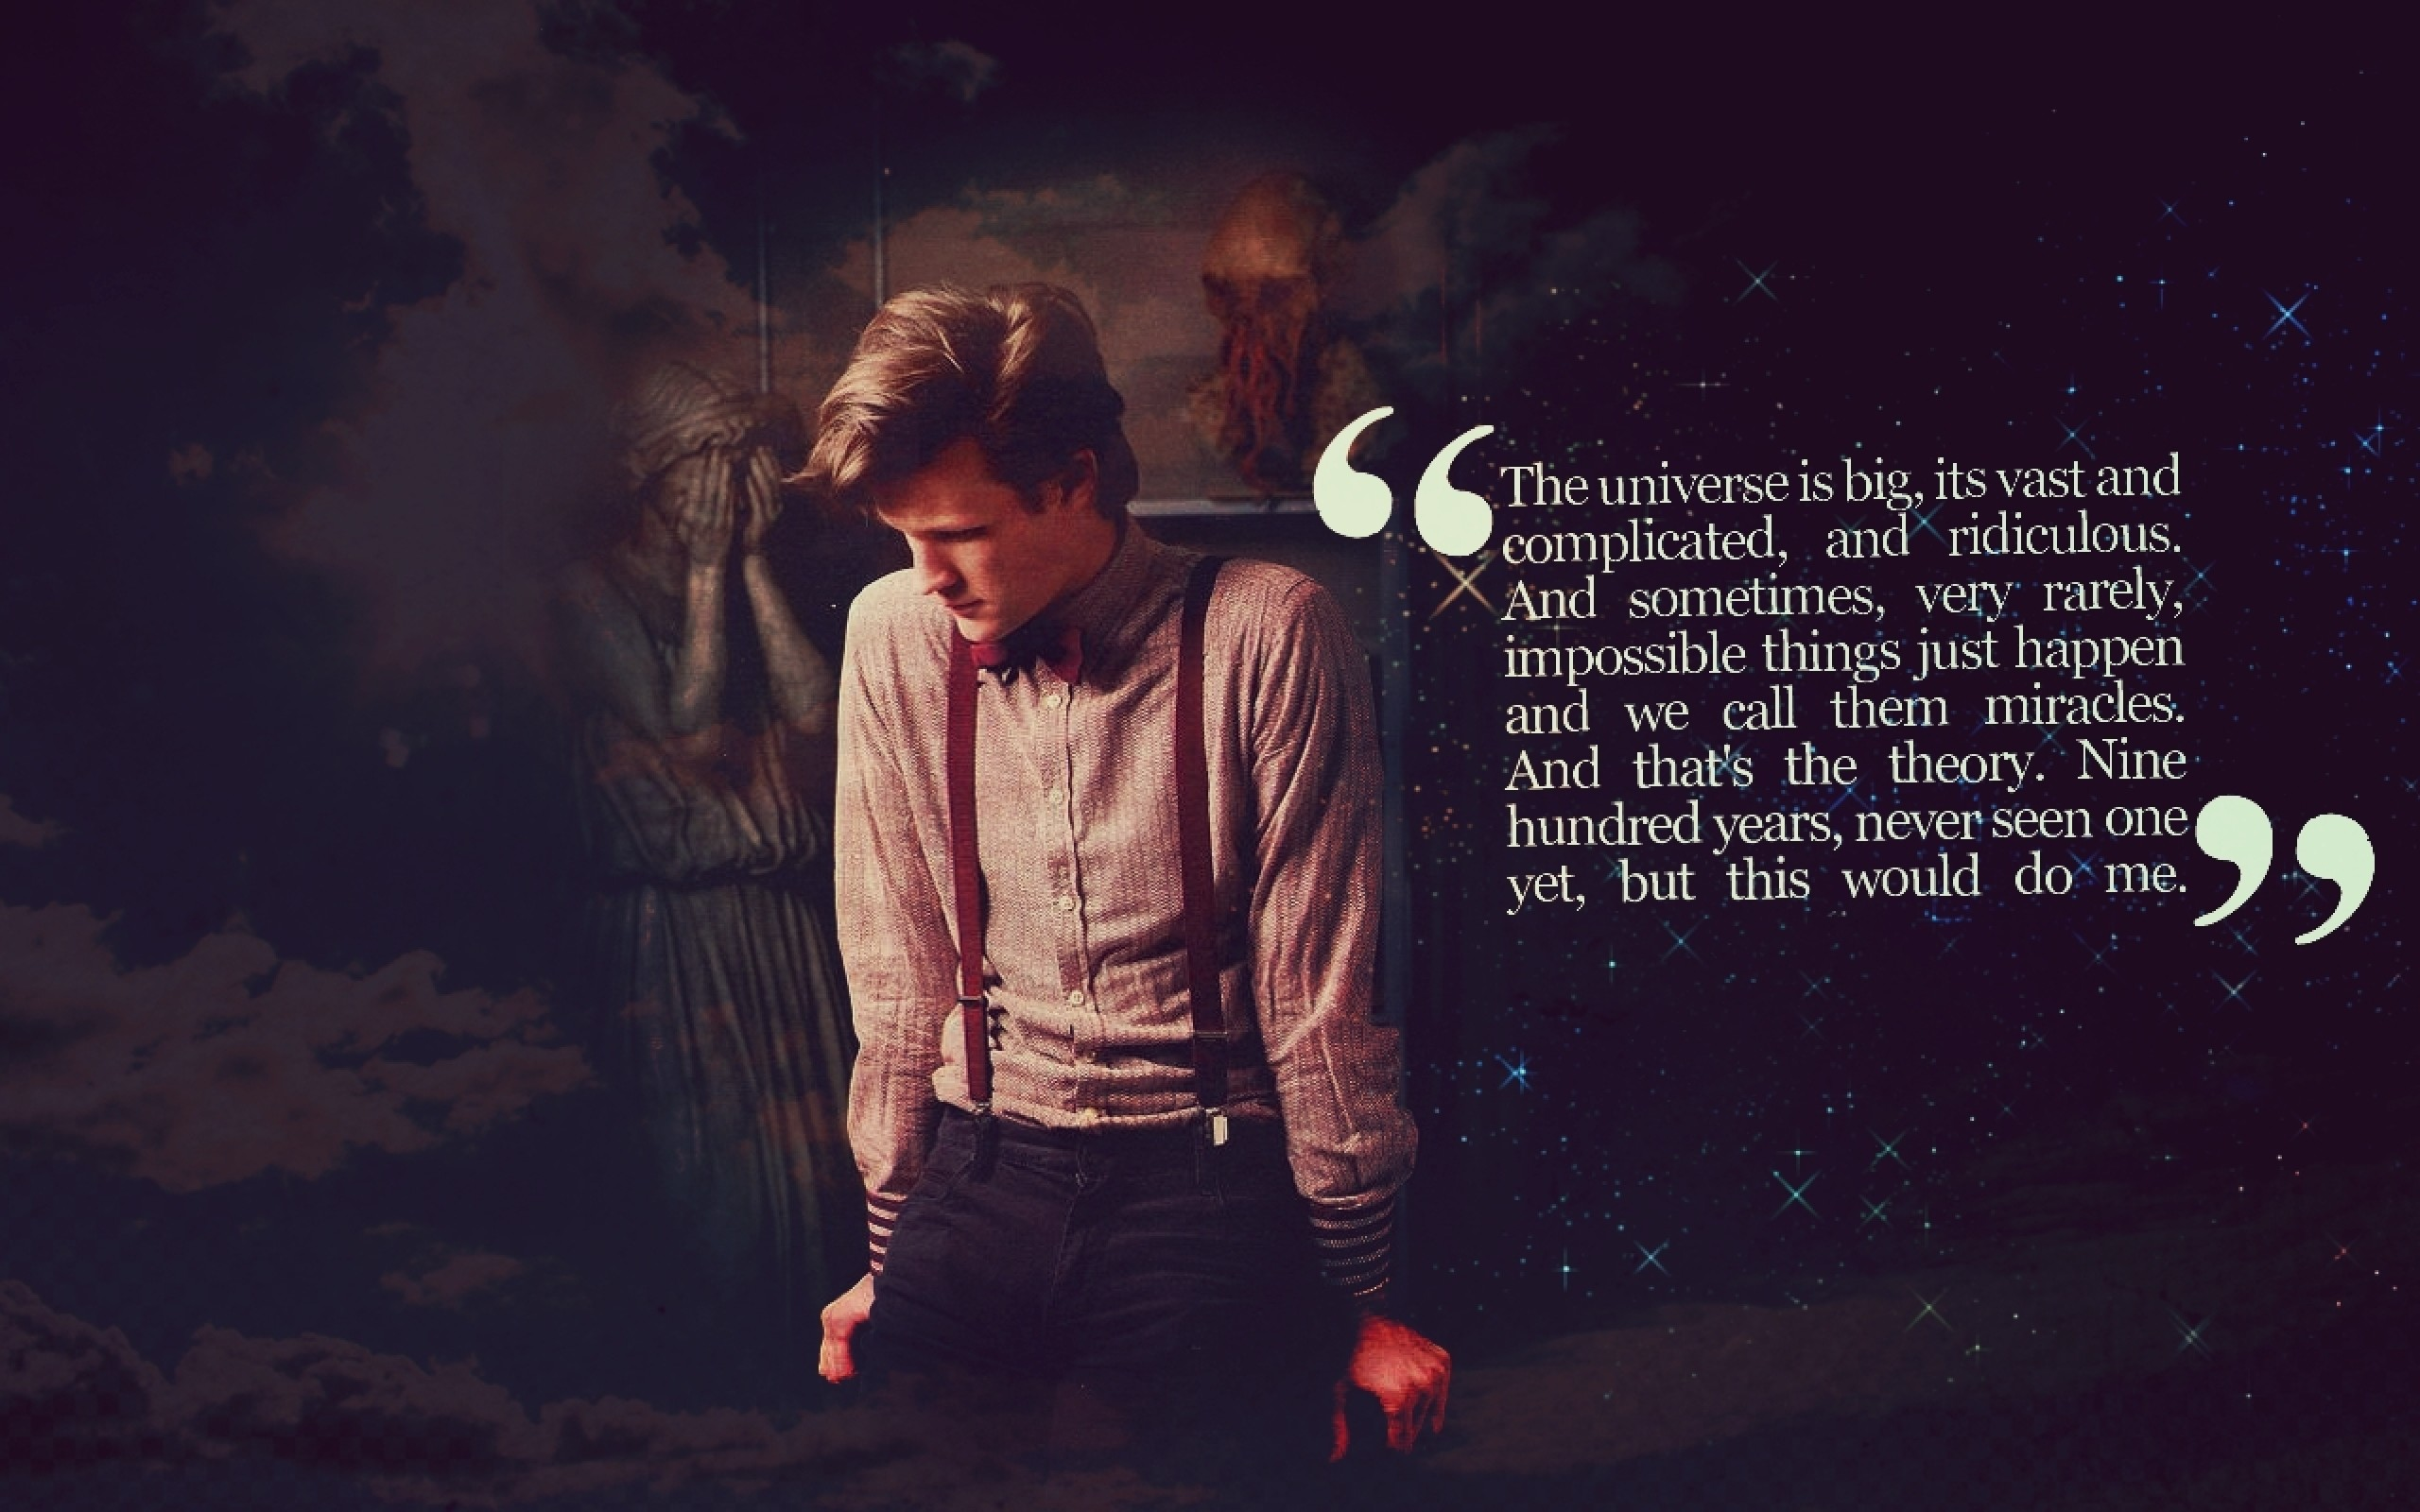 Doctor Who Quote Wallpapers 66 Images Lock Diagram Quotes 1920x1080